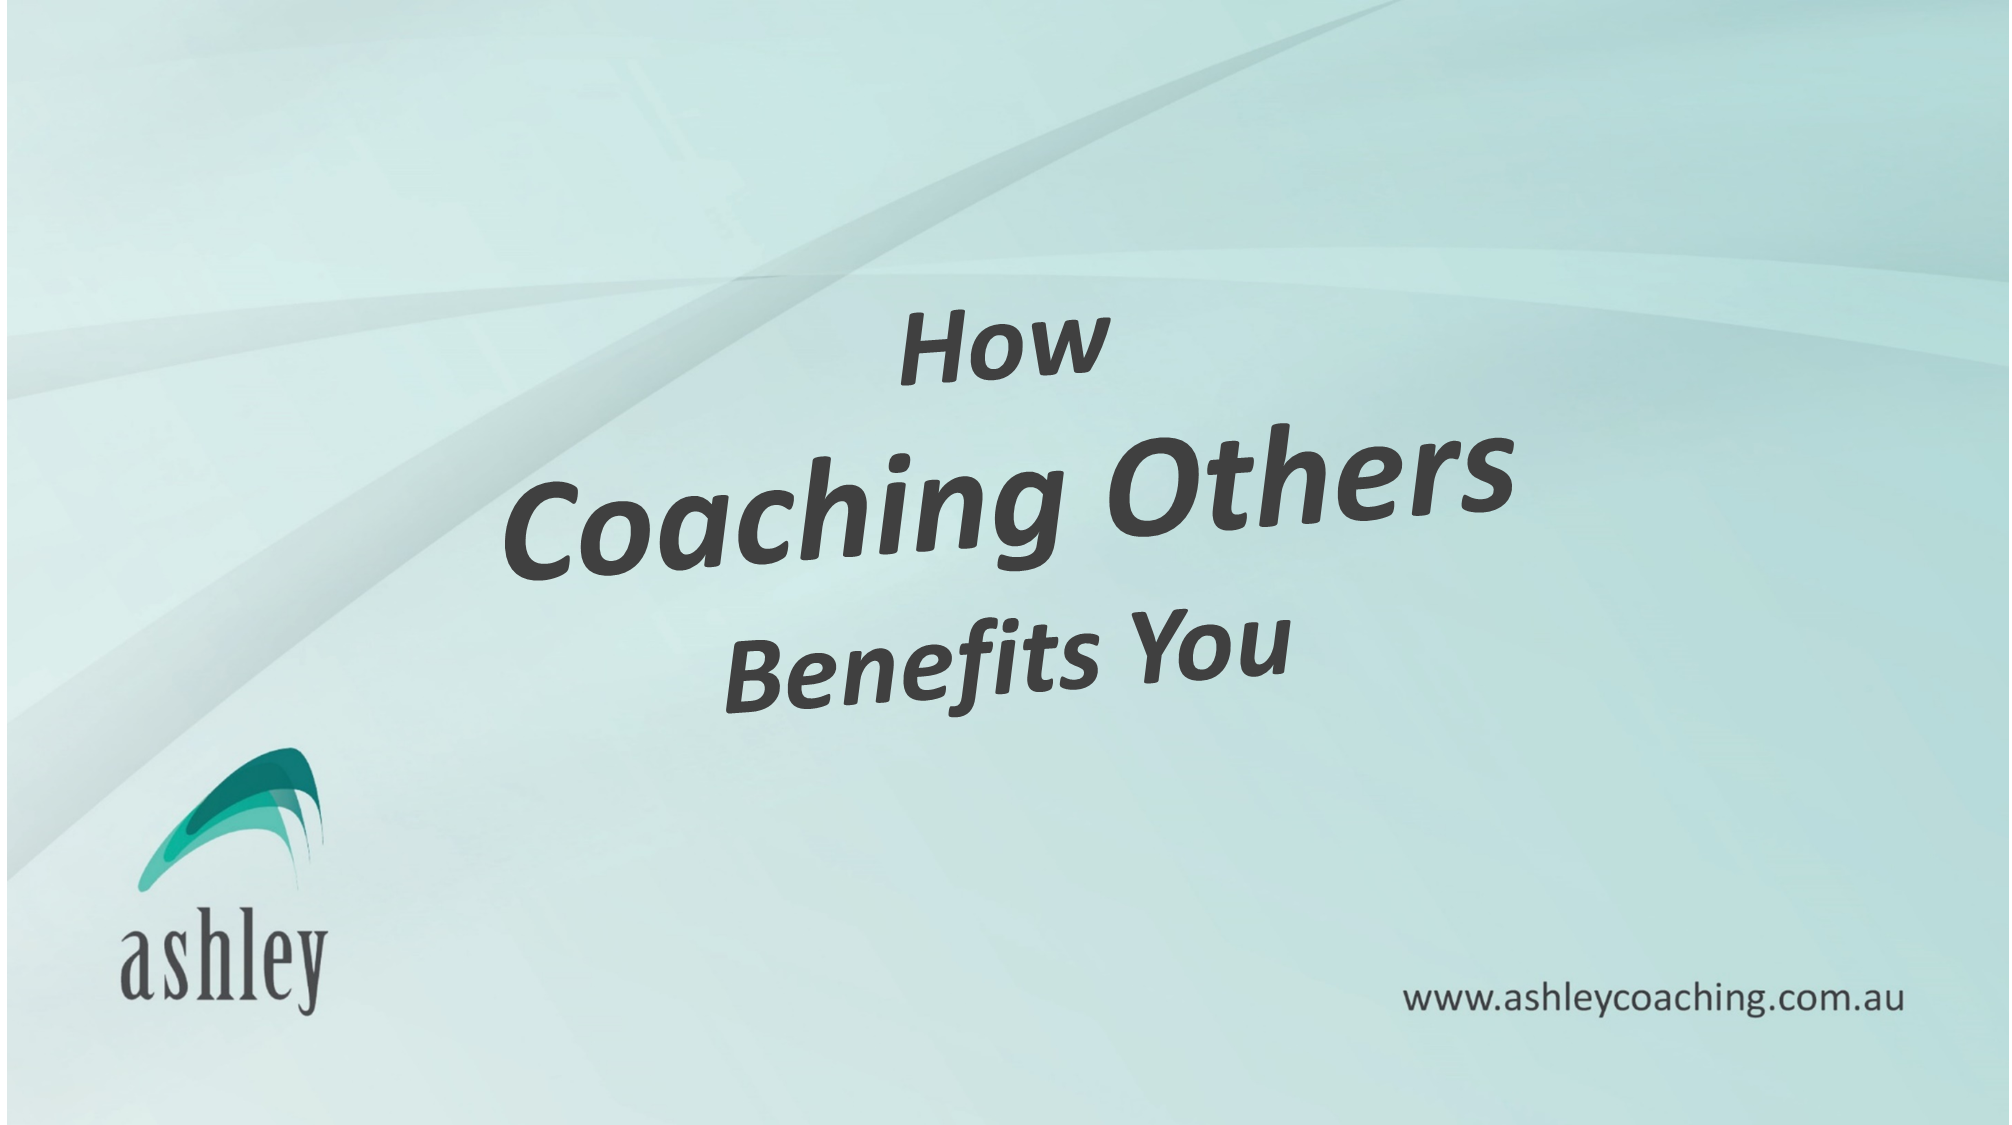 How Coaching Others Benefits You